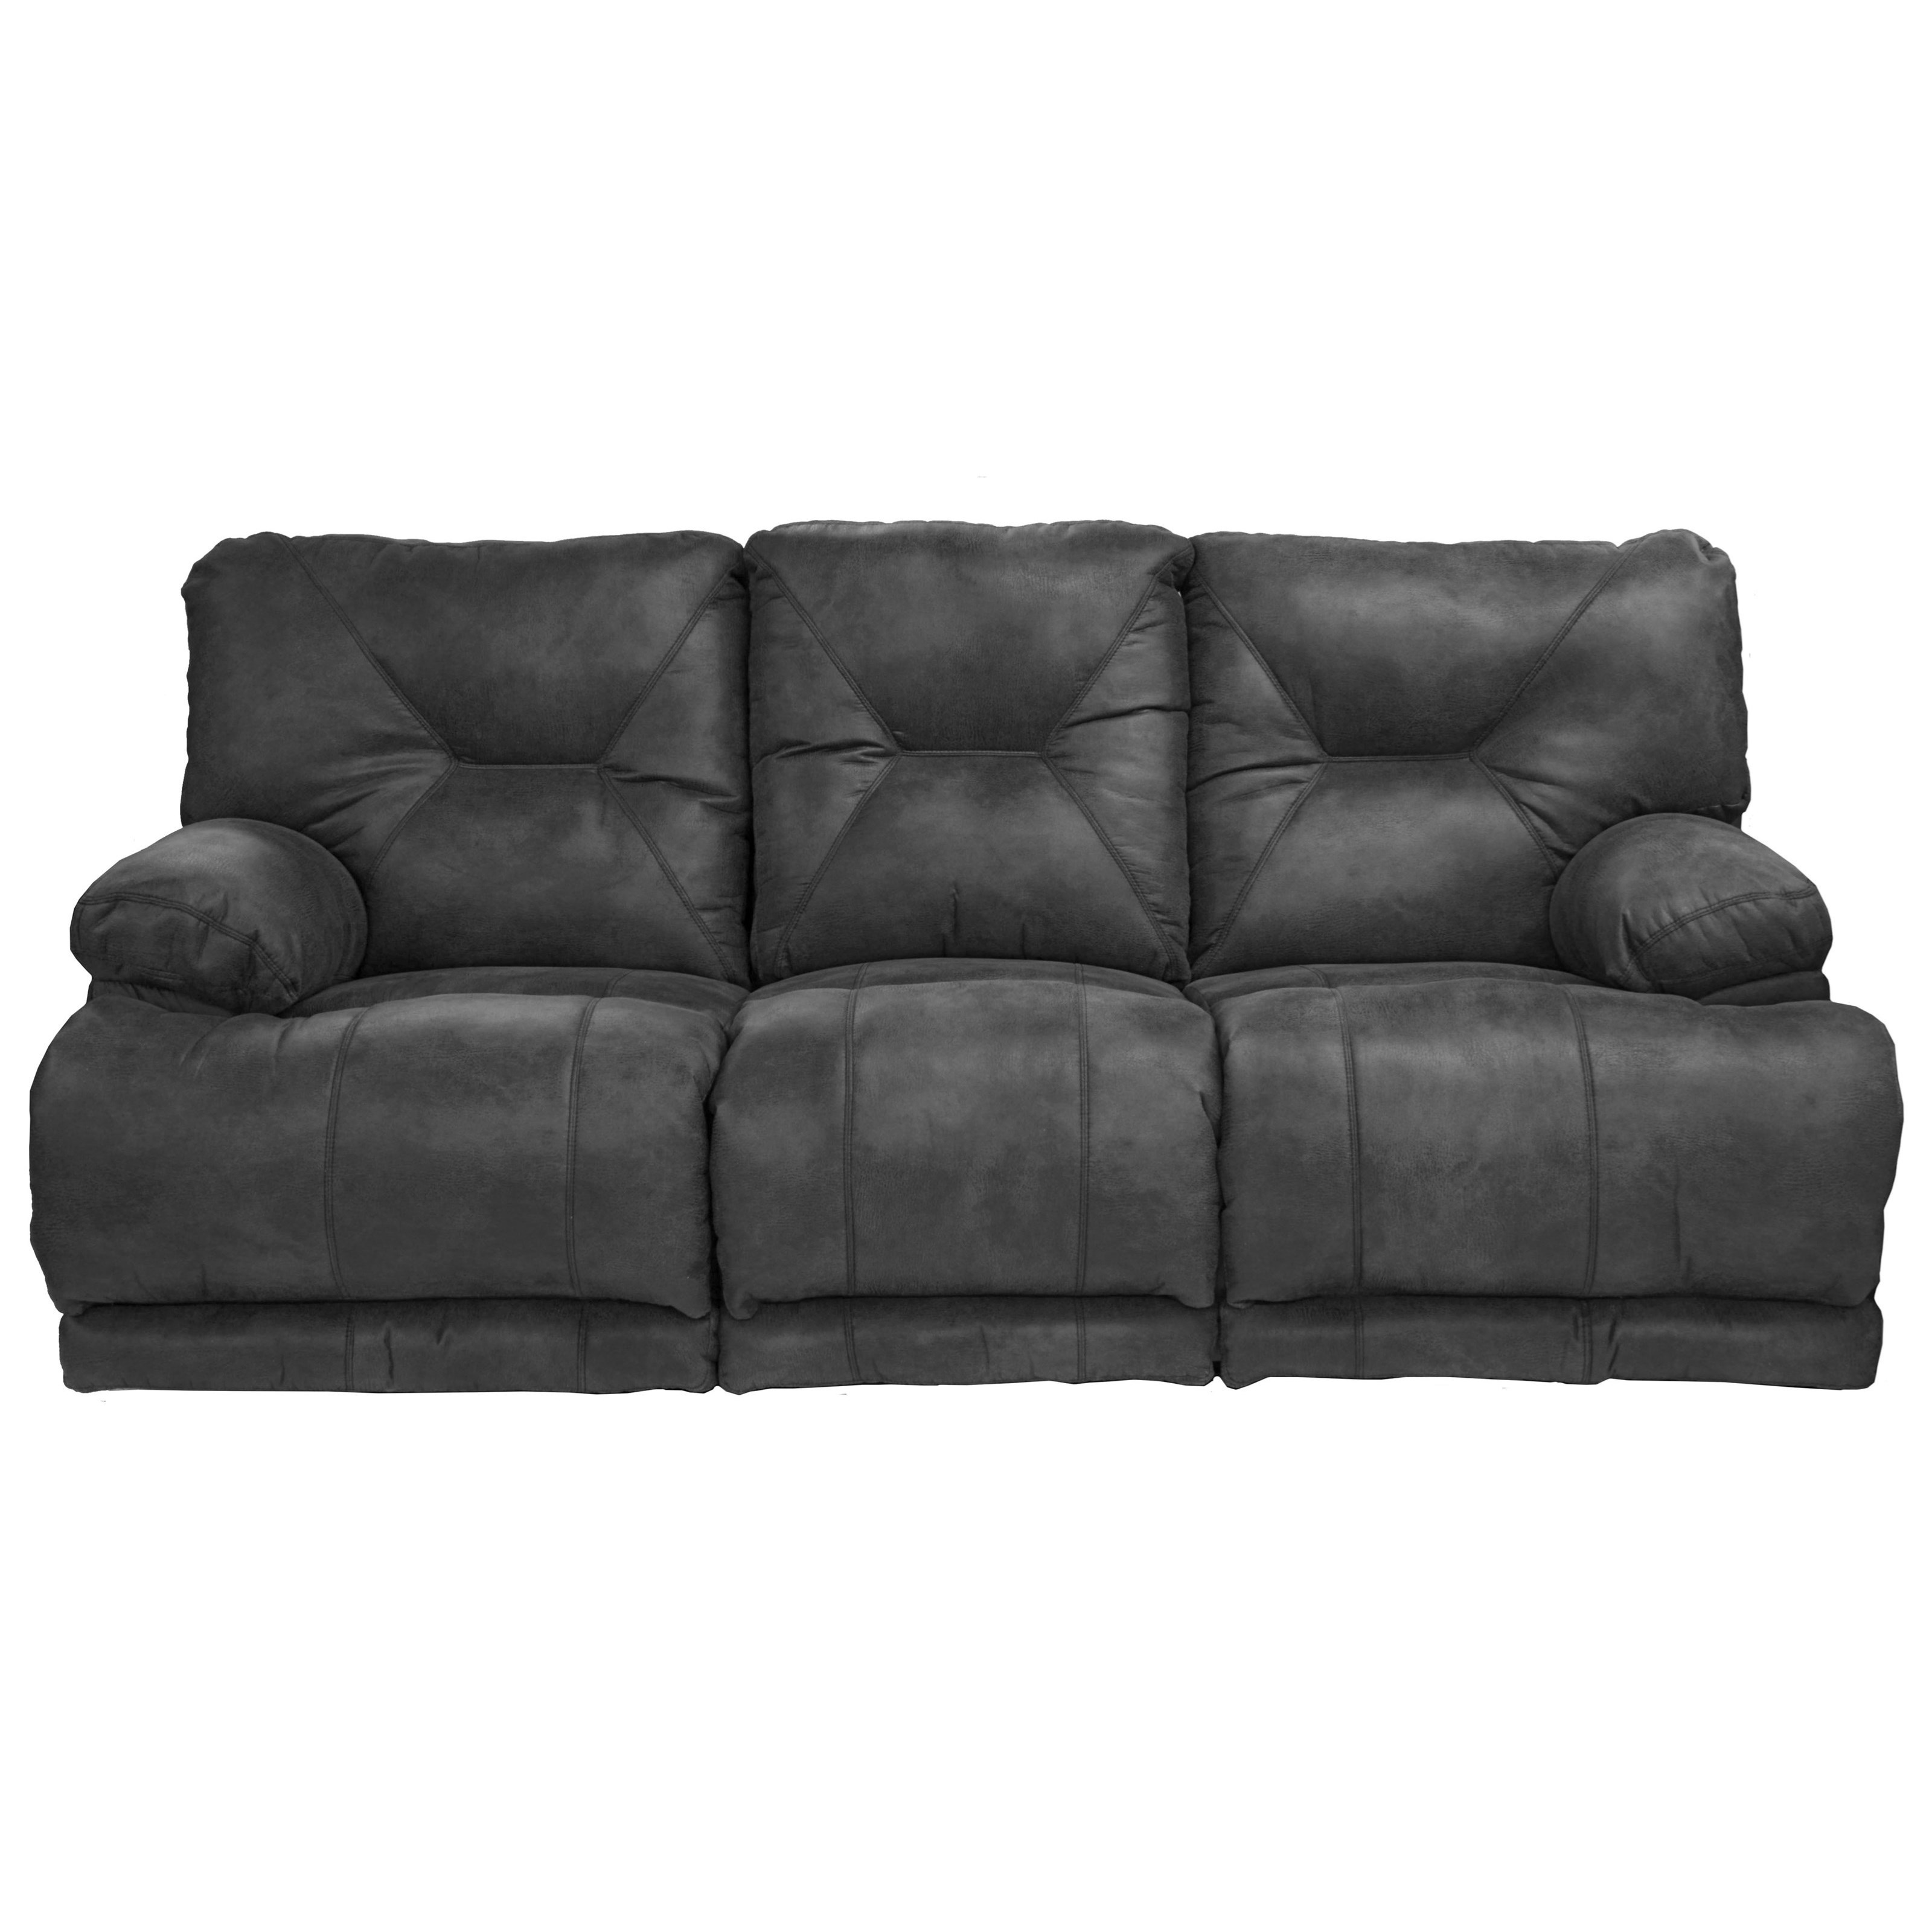 Voyager Power Lay Flat Reclining Sofa by Catnapper at Northeast Factory Direct